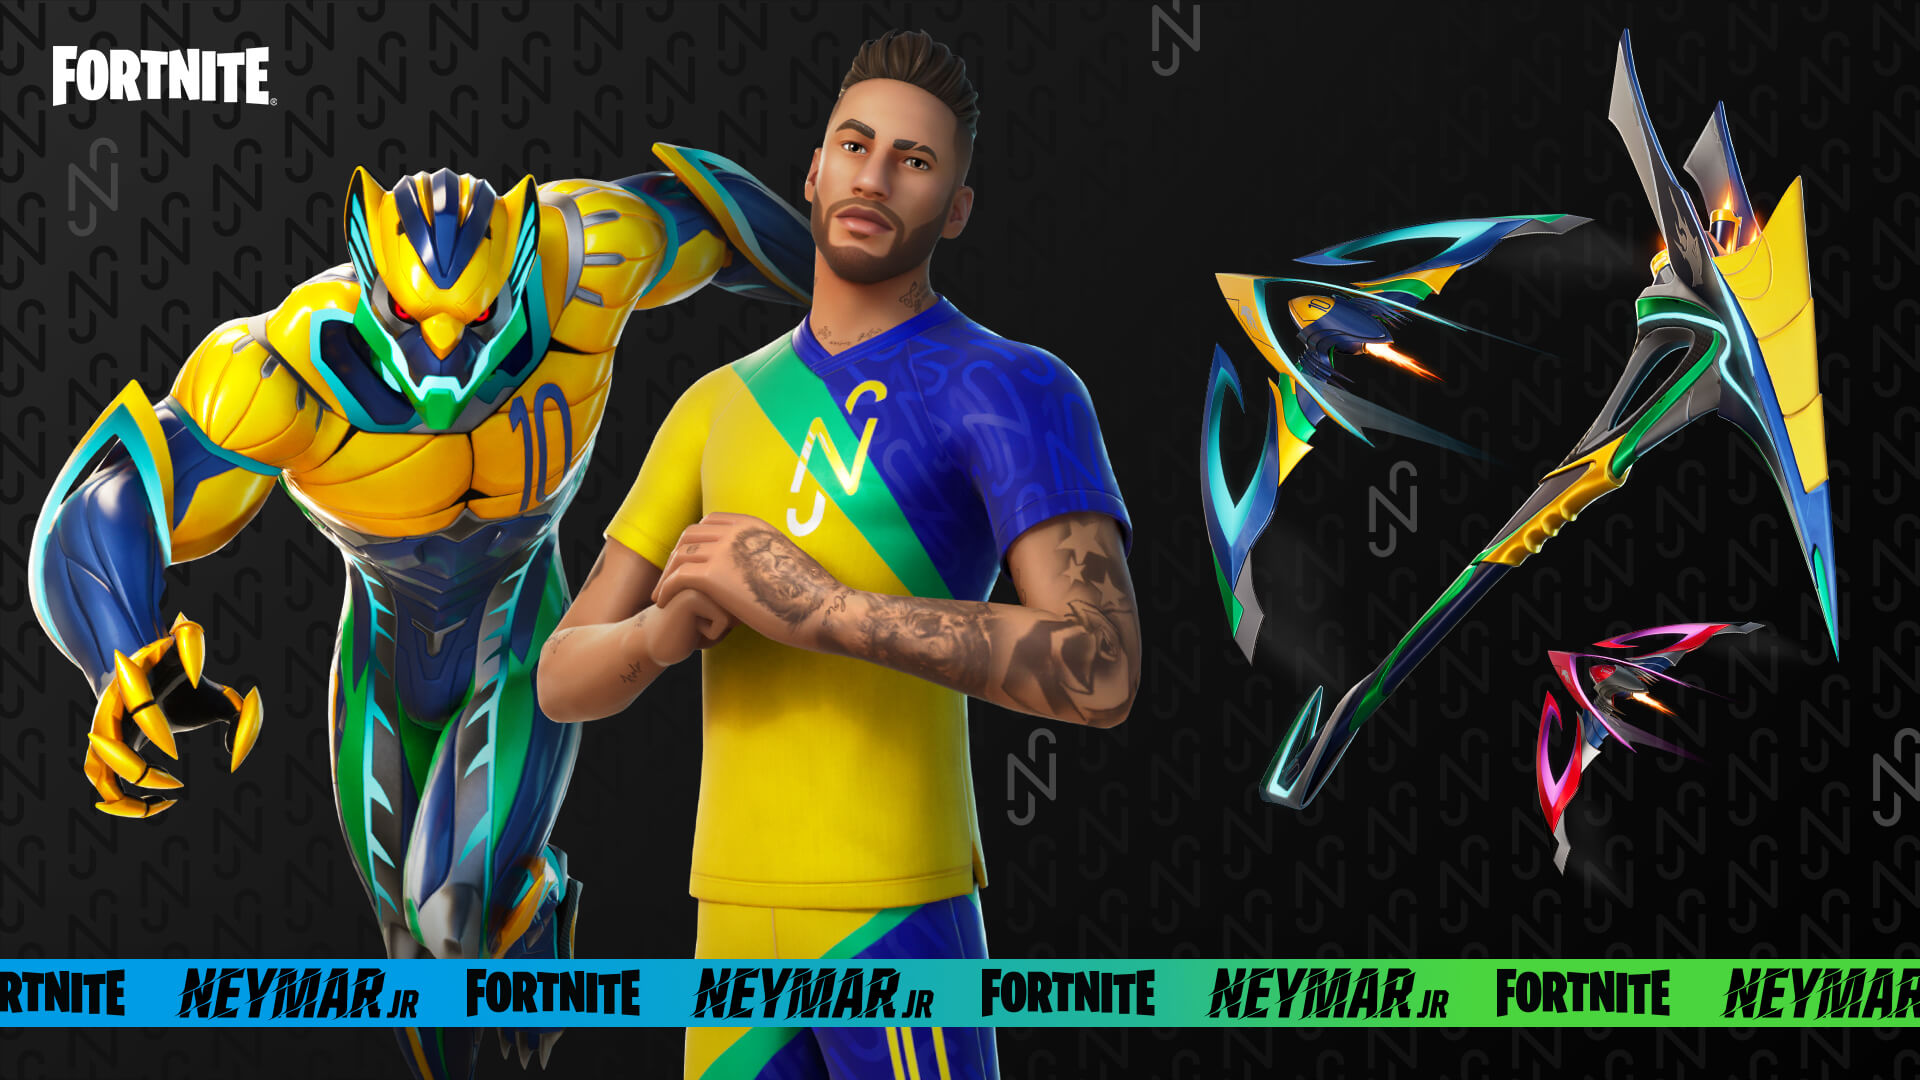 Fortnite Neymar Jr Epic Quest Rewards